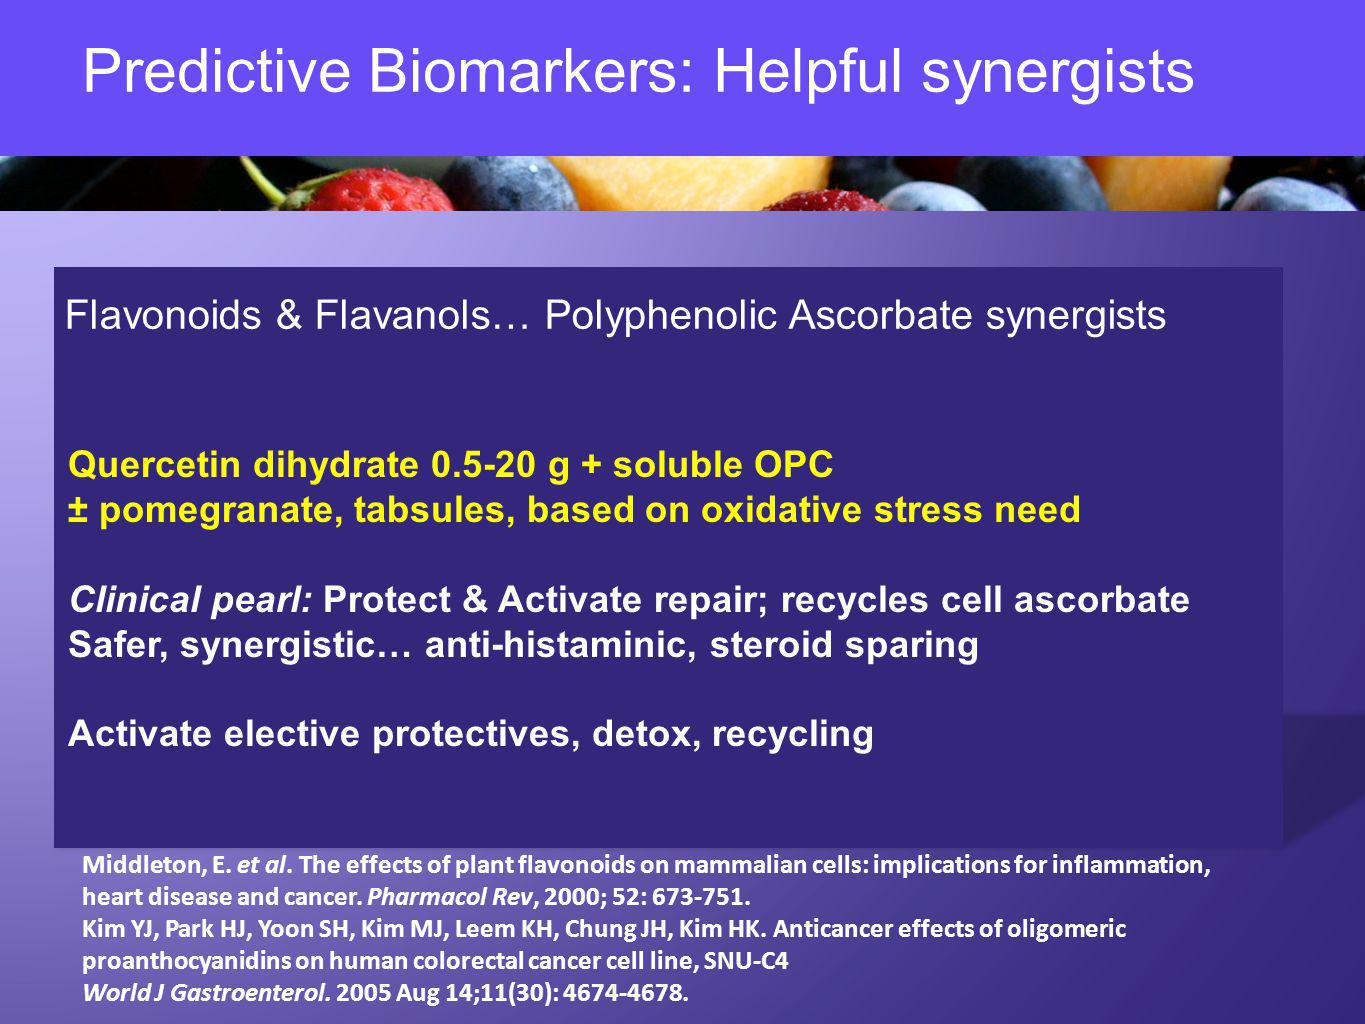 Predictive Biomarkers: Helpful synergists Flavonoids & Flavanols… Polyphenolic Ascorbate synergists Quercetin dihydrate 0.5-20 g + soluble OPC ± pomegranate, tabsules, based on oxidative stress need Clinical pearl: Protect & Activate repair; recycles cell ascorbate Safer, synergistic… anti-histaminic, steroid sparing Activate elective protectives, detox, recycling Middleton, E.